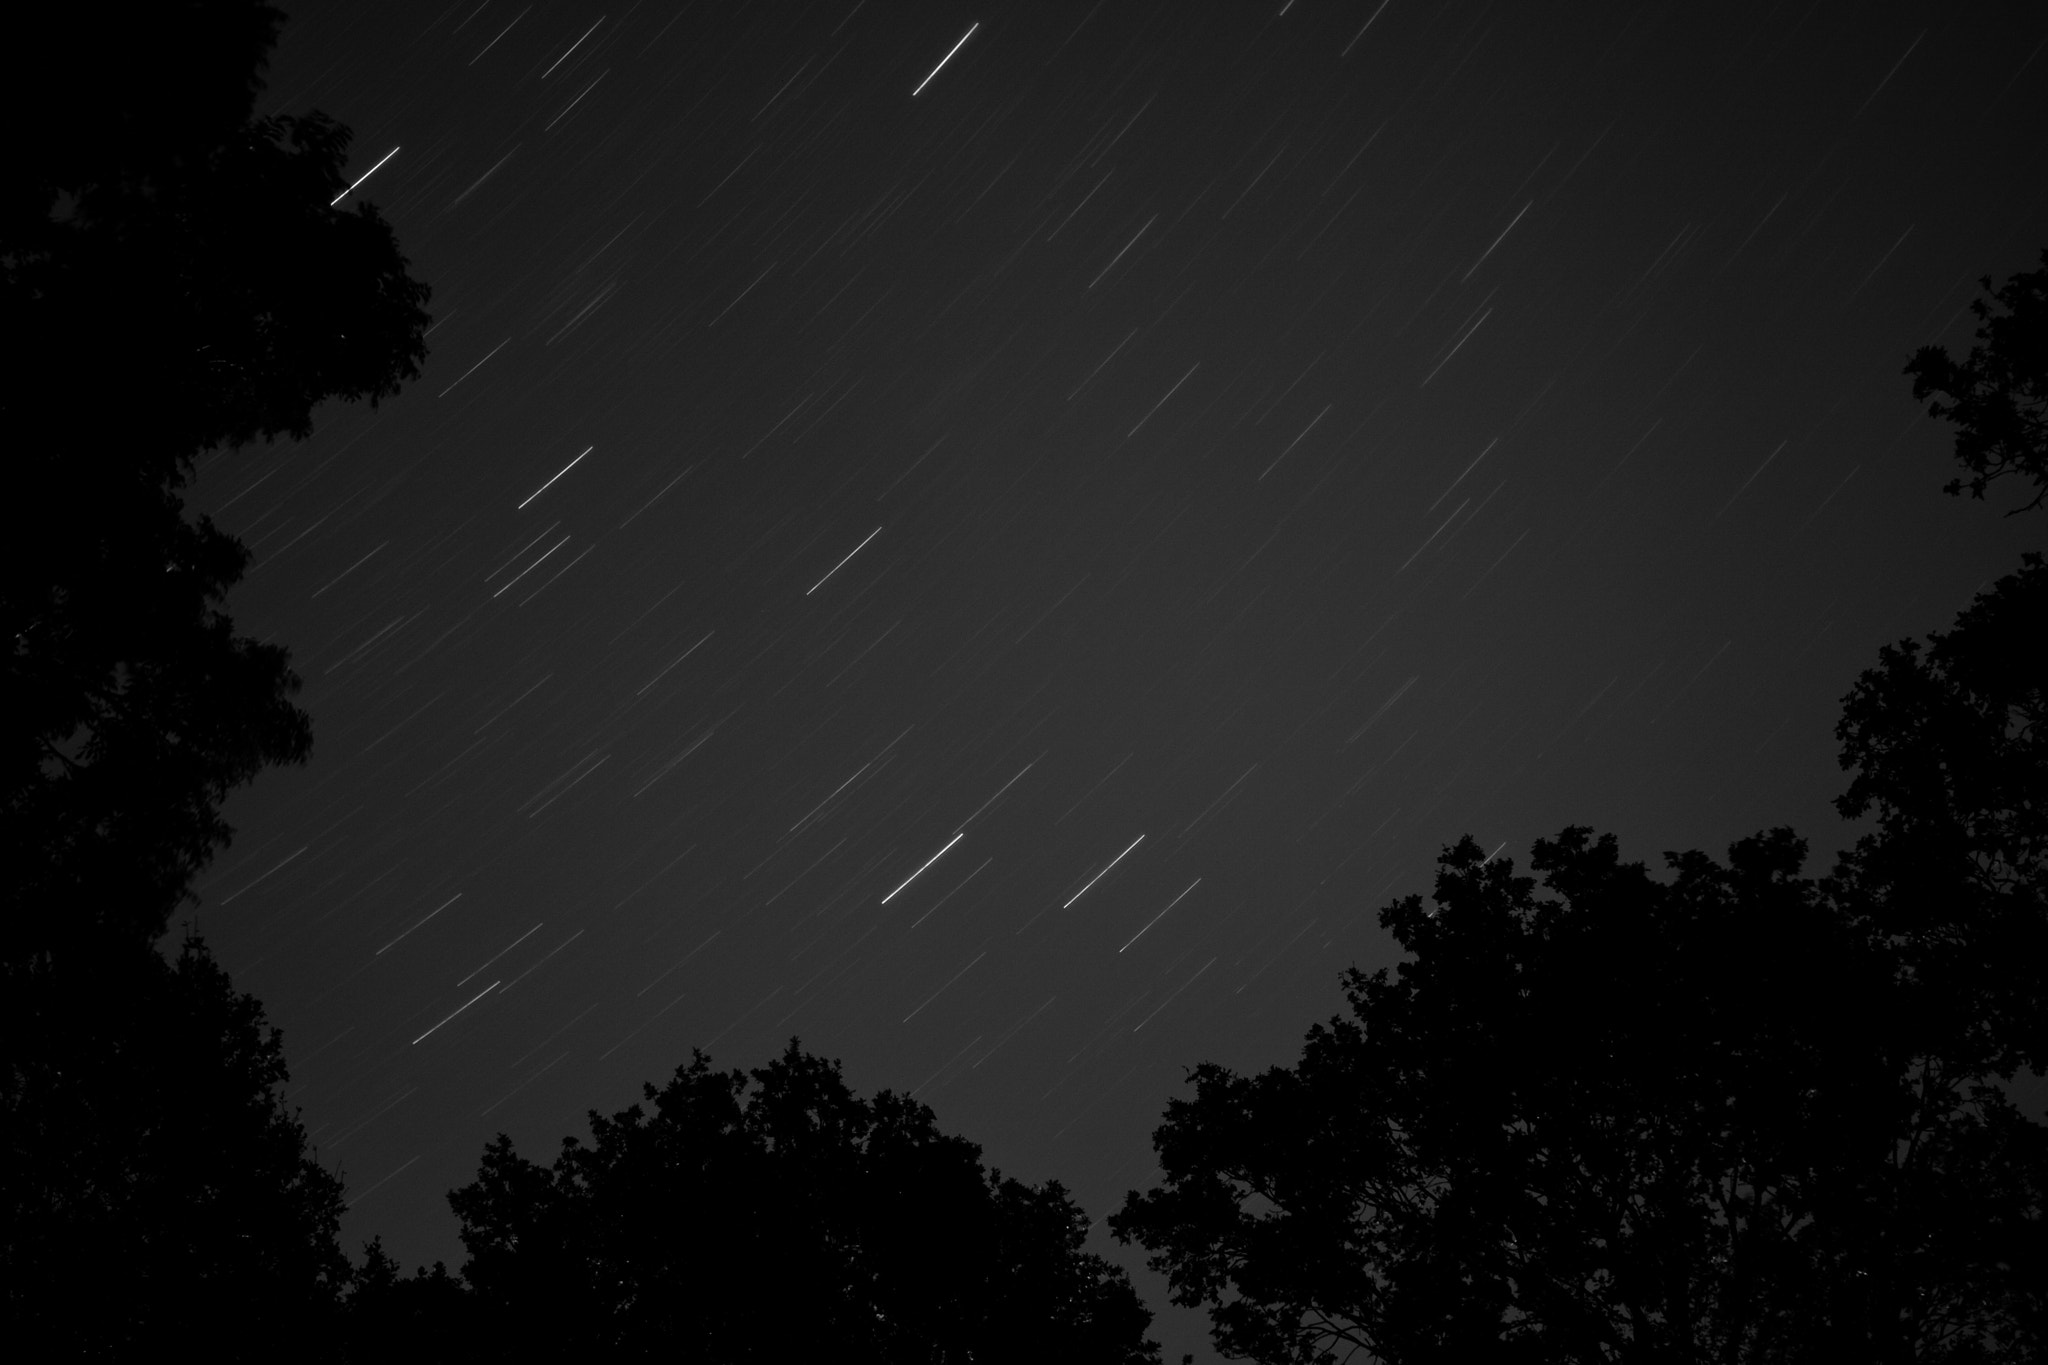 Photograph Stars by Simon Nickel on 500px